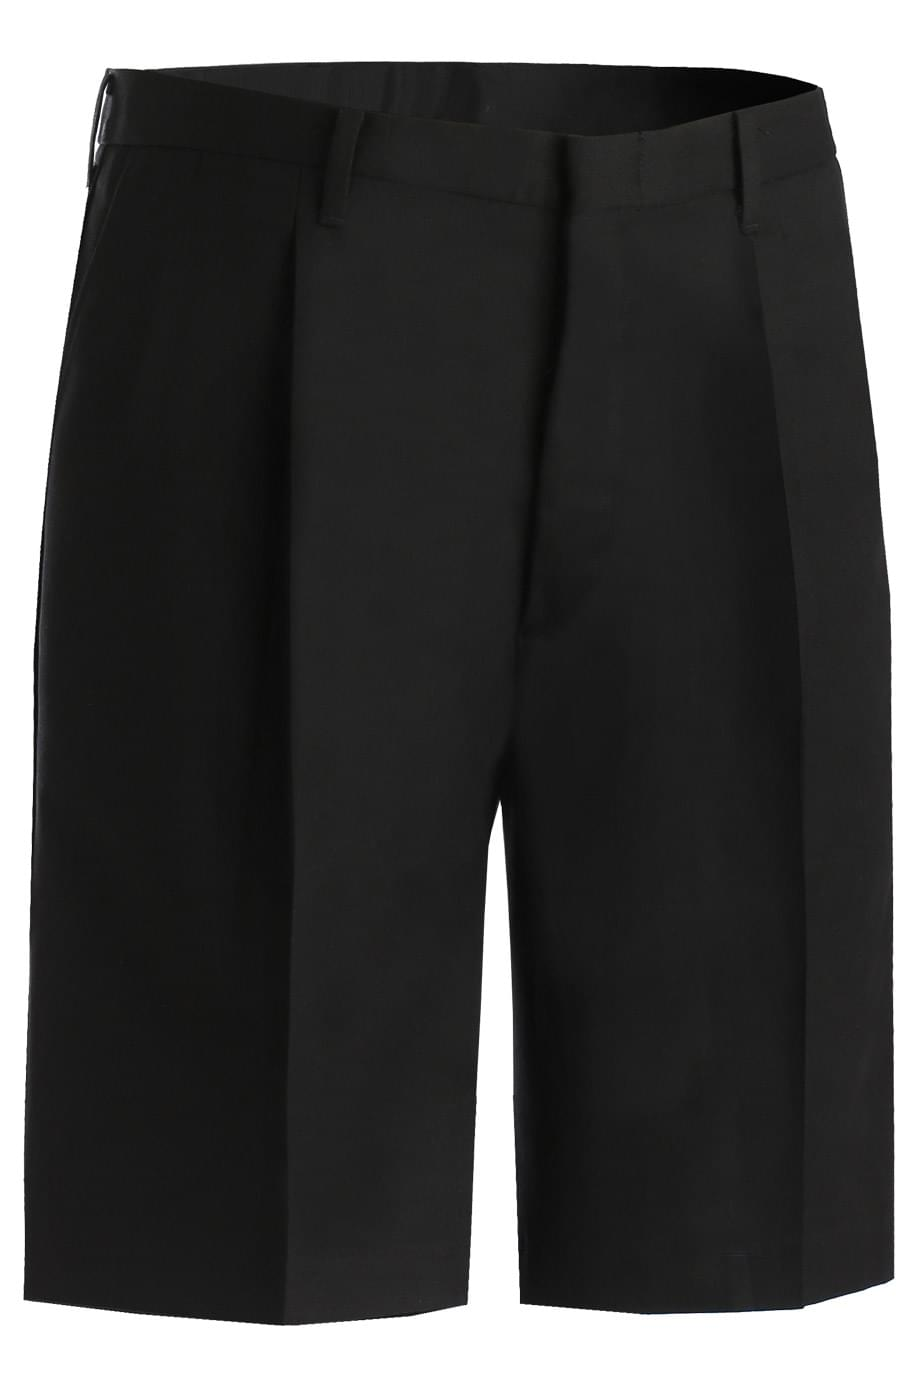 BUSINESS CASUAL PLEATED FRONT SHORT